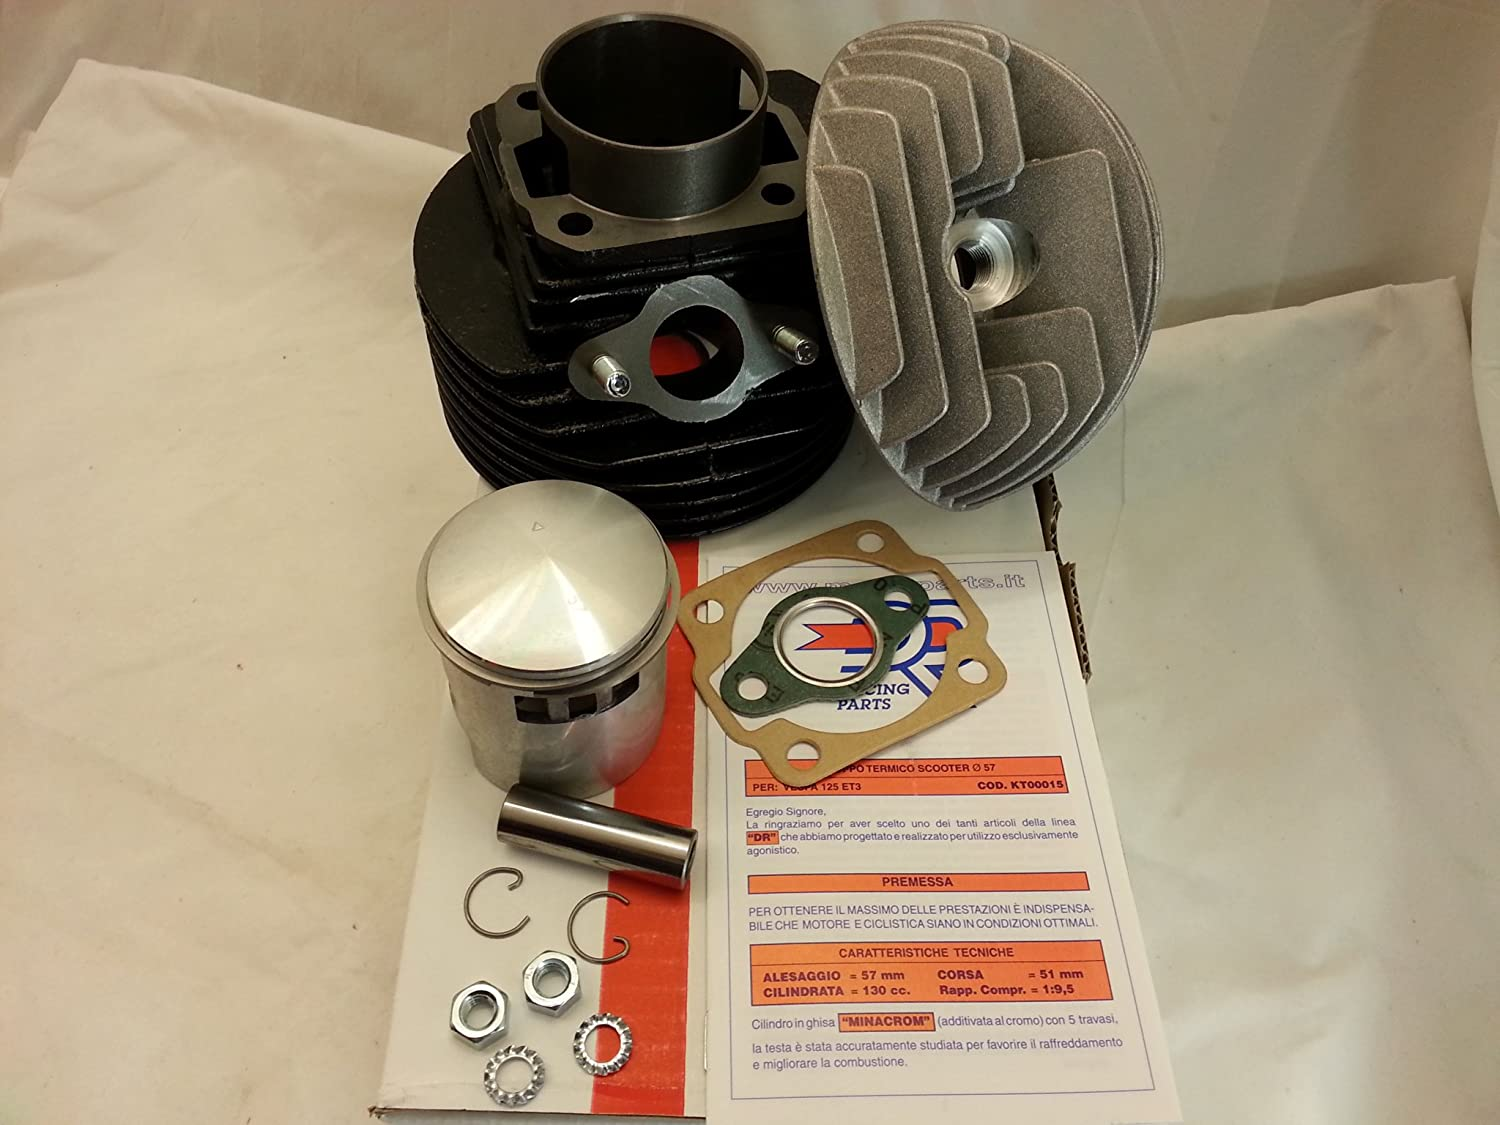 KIT GRUPPO TERMICO CILINDRO VESPA 50/125 DR130cc D.57 RMS